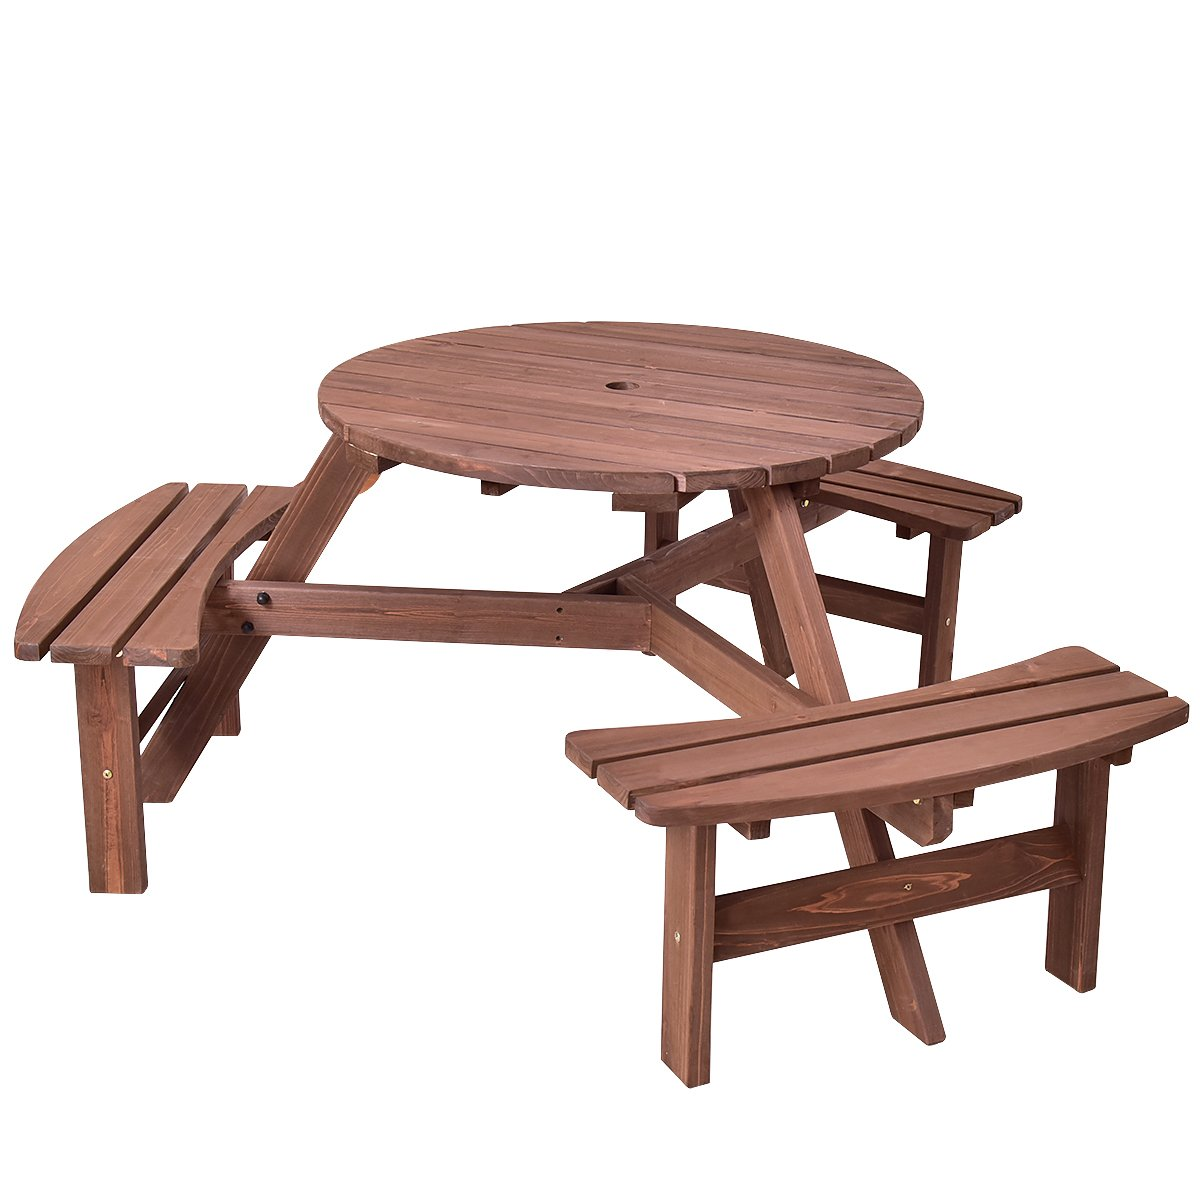 Giantex 6 Person Wooden Picnic Table Set Wood Bench Umbrella Hold